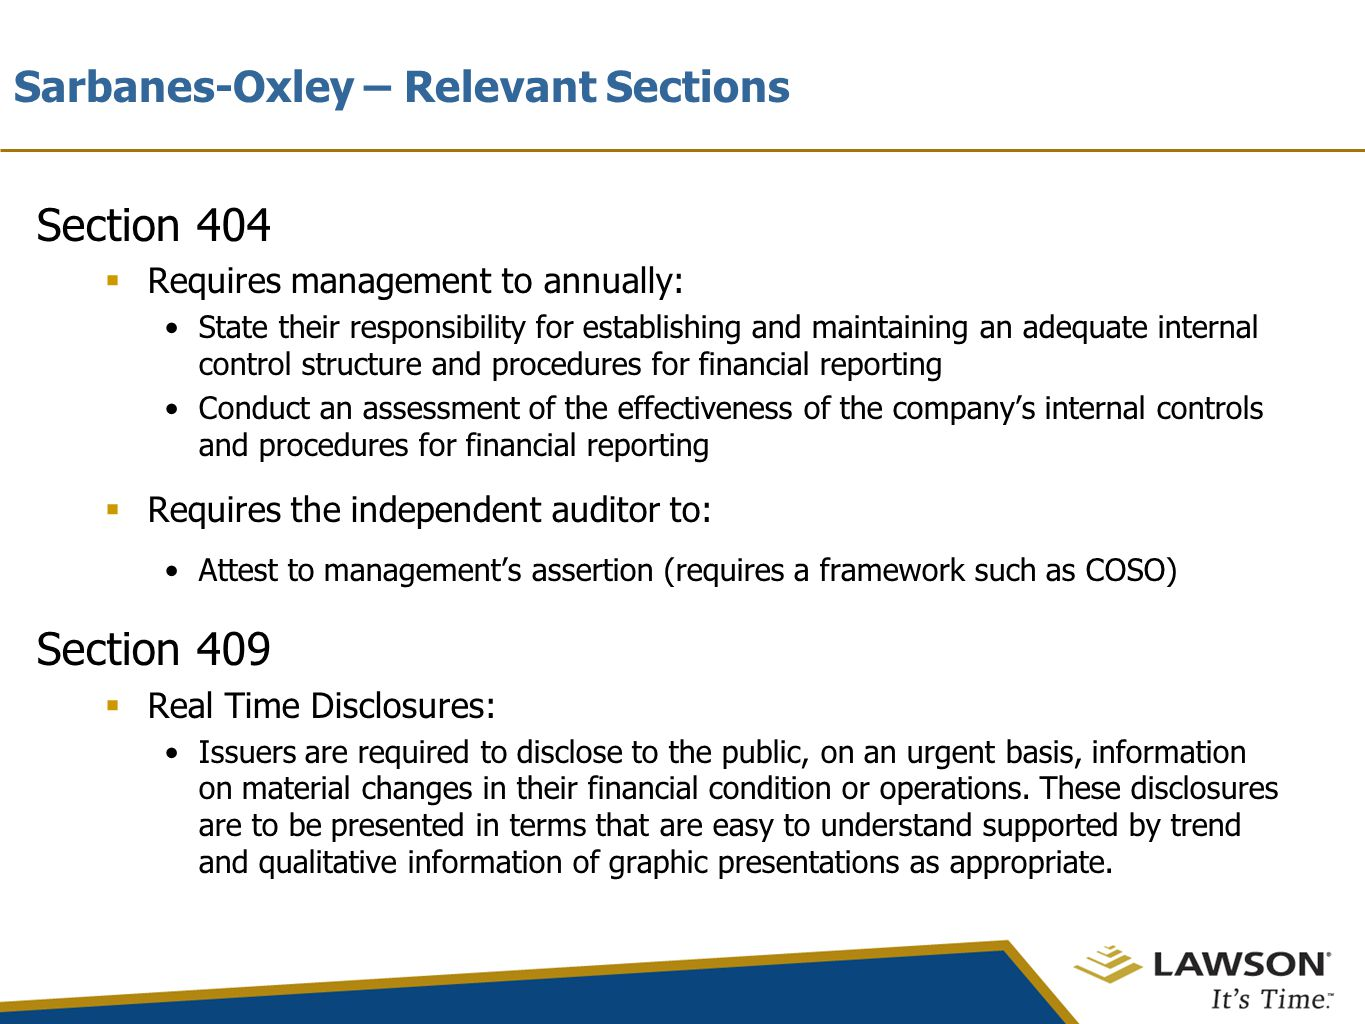 Sarbanes-Oxley – Relevant Sections Section 404  Requires management to annually: State their responsibility for establishing and maintaining an adequate internal control structure and procedures for financial reporting Conduct an assessment of the effectiveness of the company's internal controls and procedures for financial reporting  Requires the independent auditor to: Attest to management's assertion (requires a framework such as COSO) Section 409  Real Time Disclosures: Issuers are required to disclose to the public, on an urgent basis, information on material changes in their financial condition or operations.